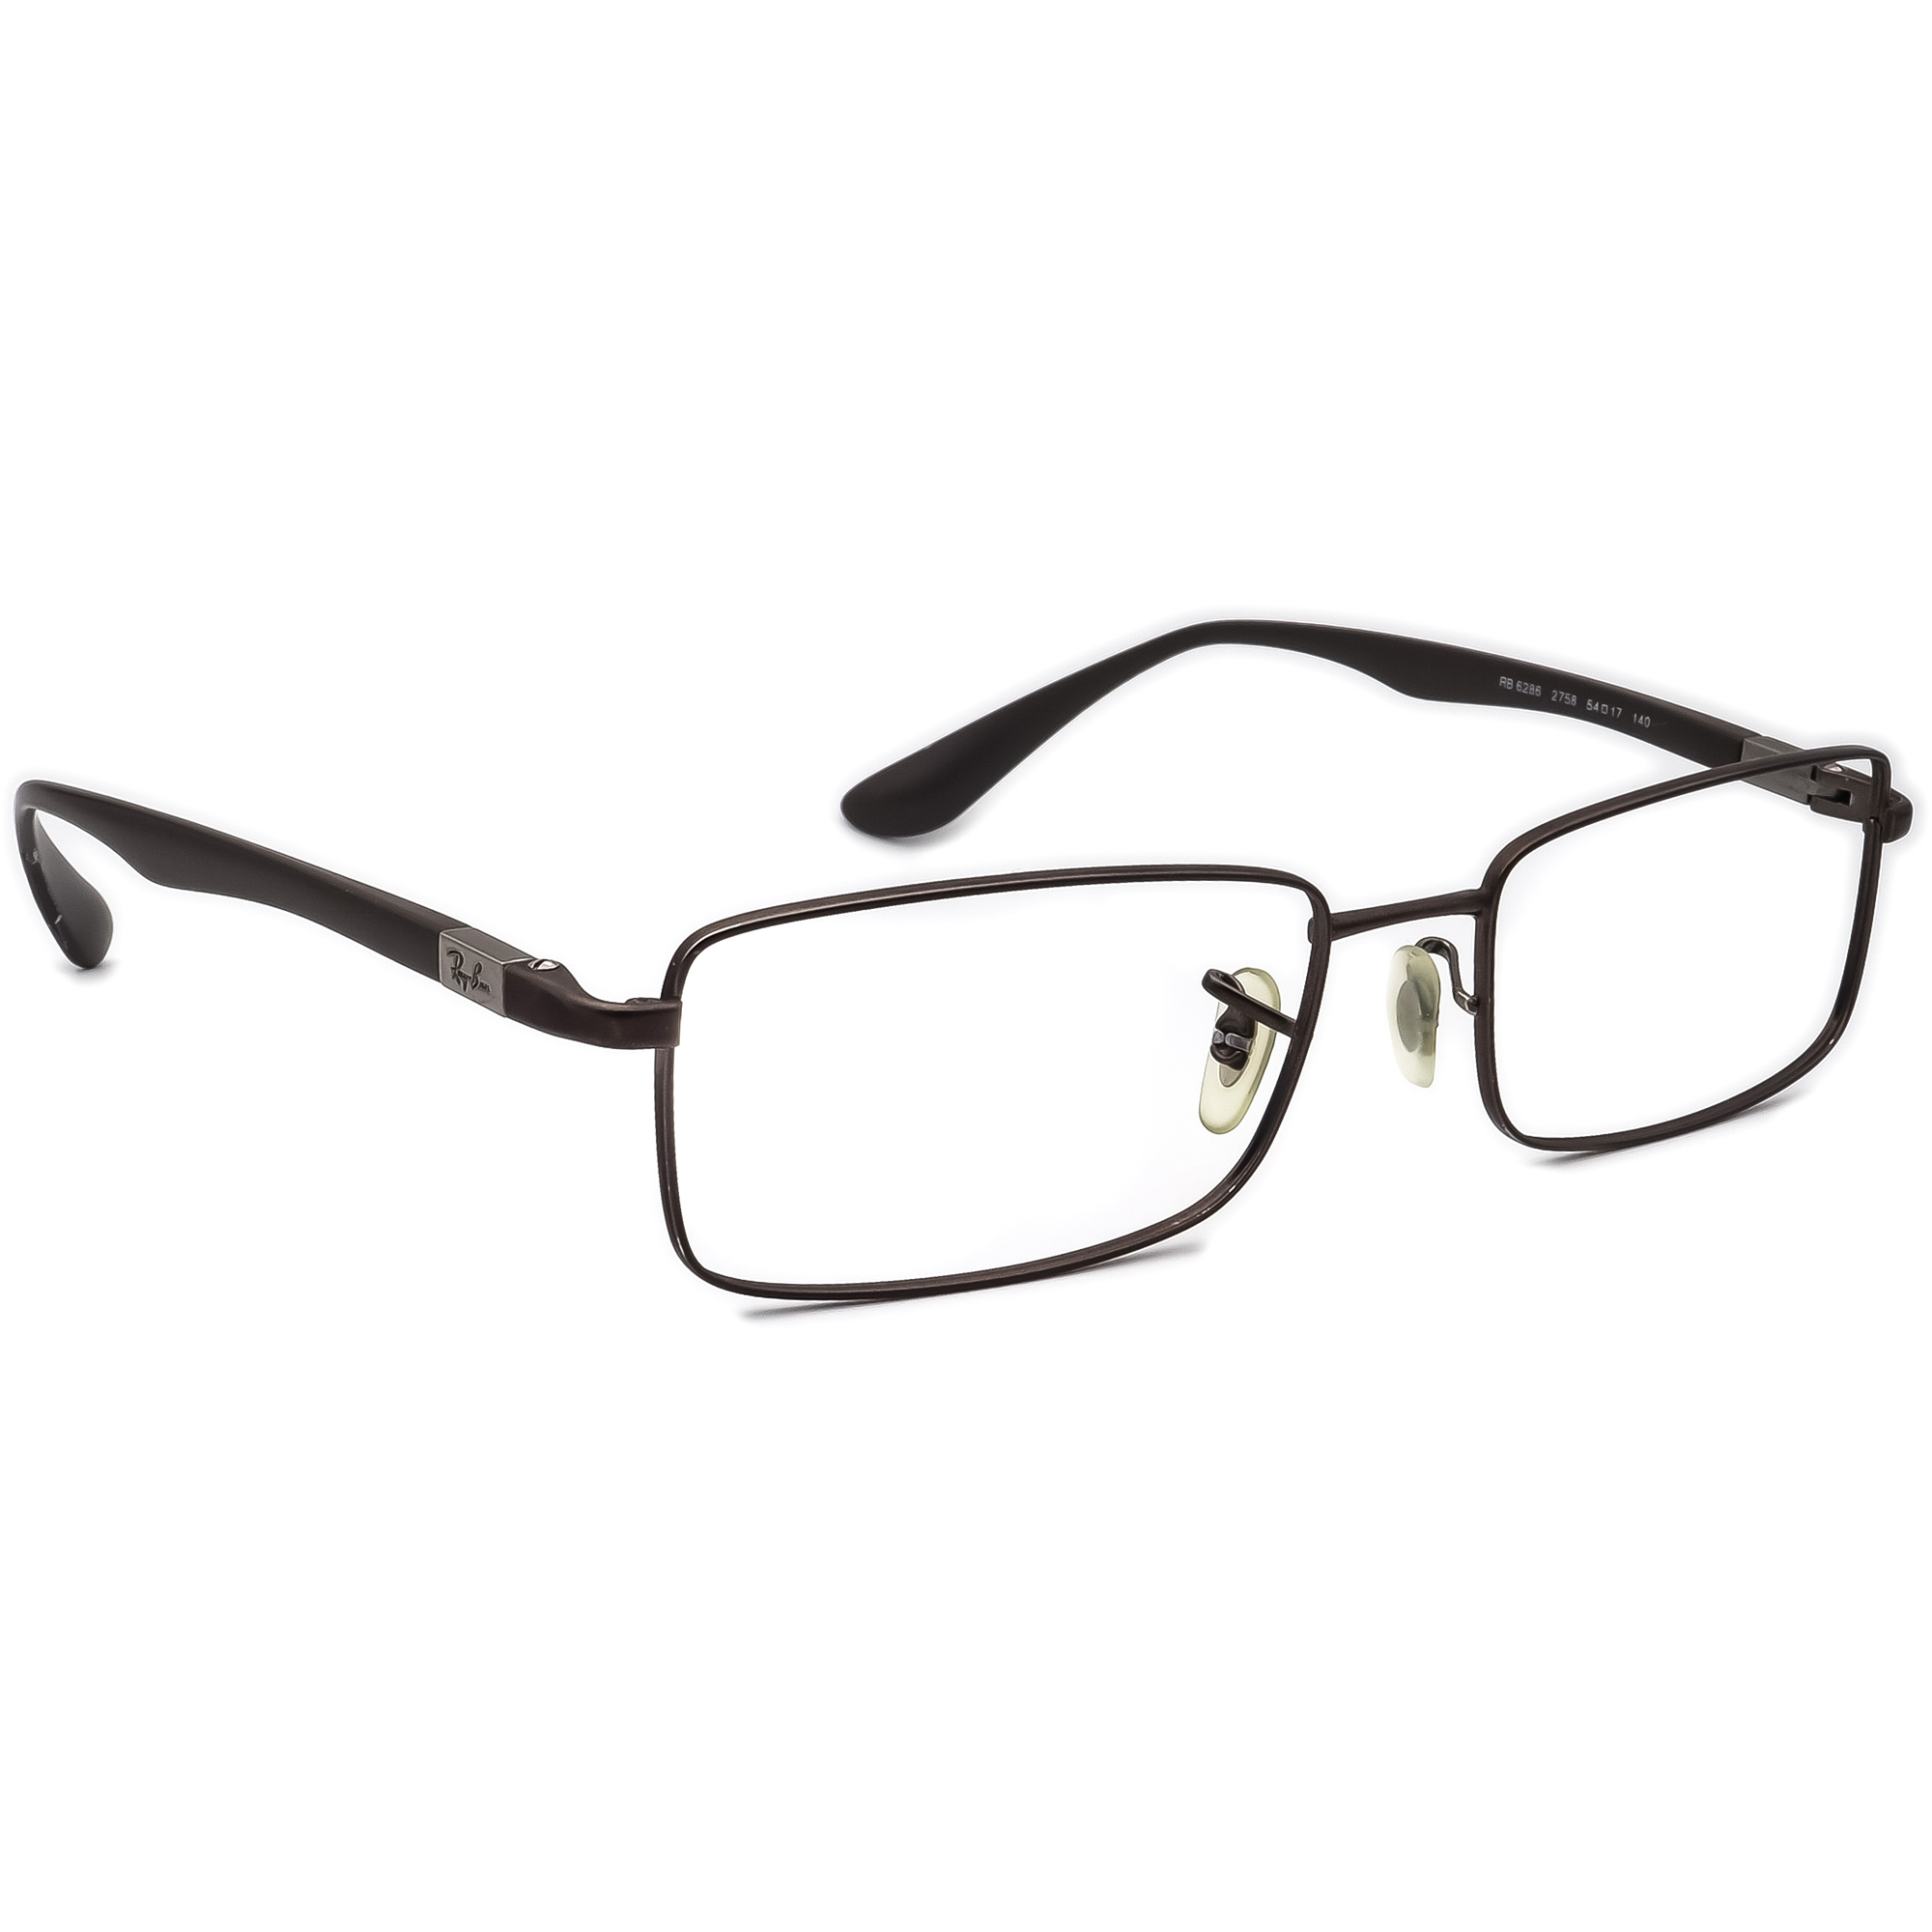 Ray-Ban RB 6286 2758 Liteforce  Eyeglasses